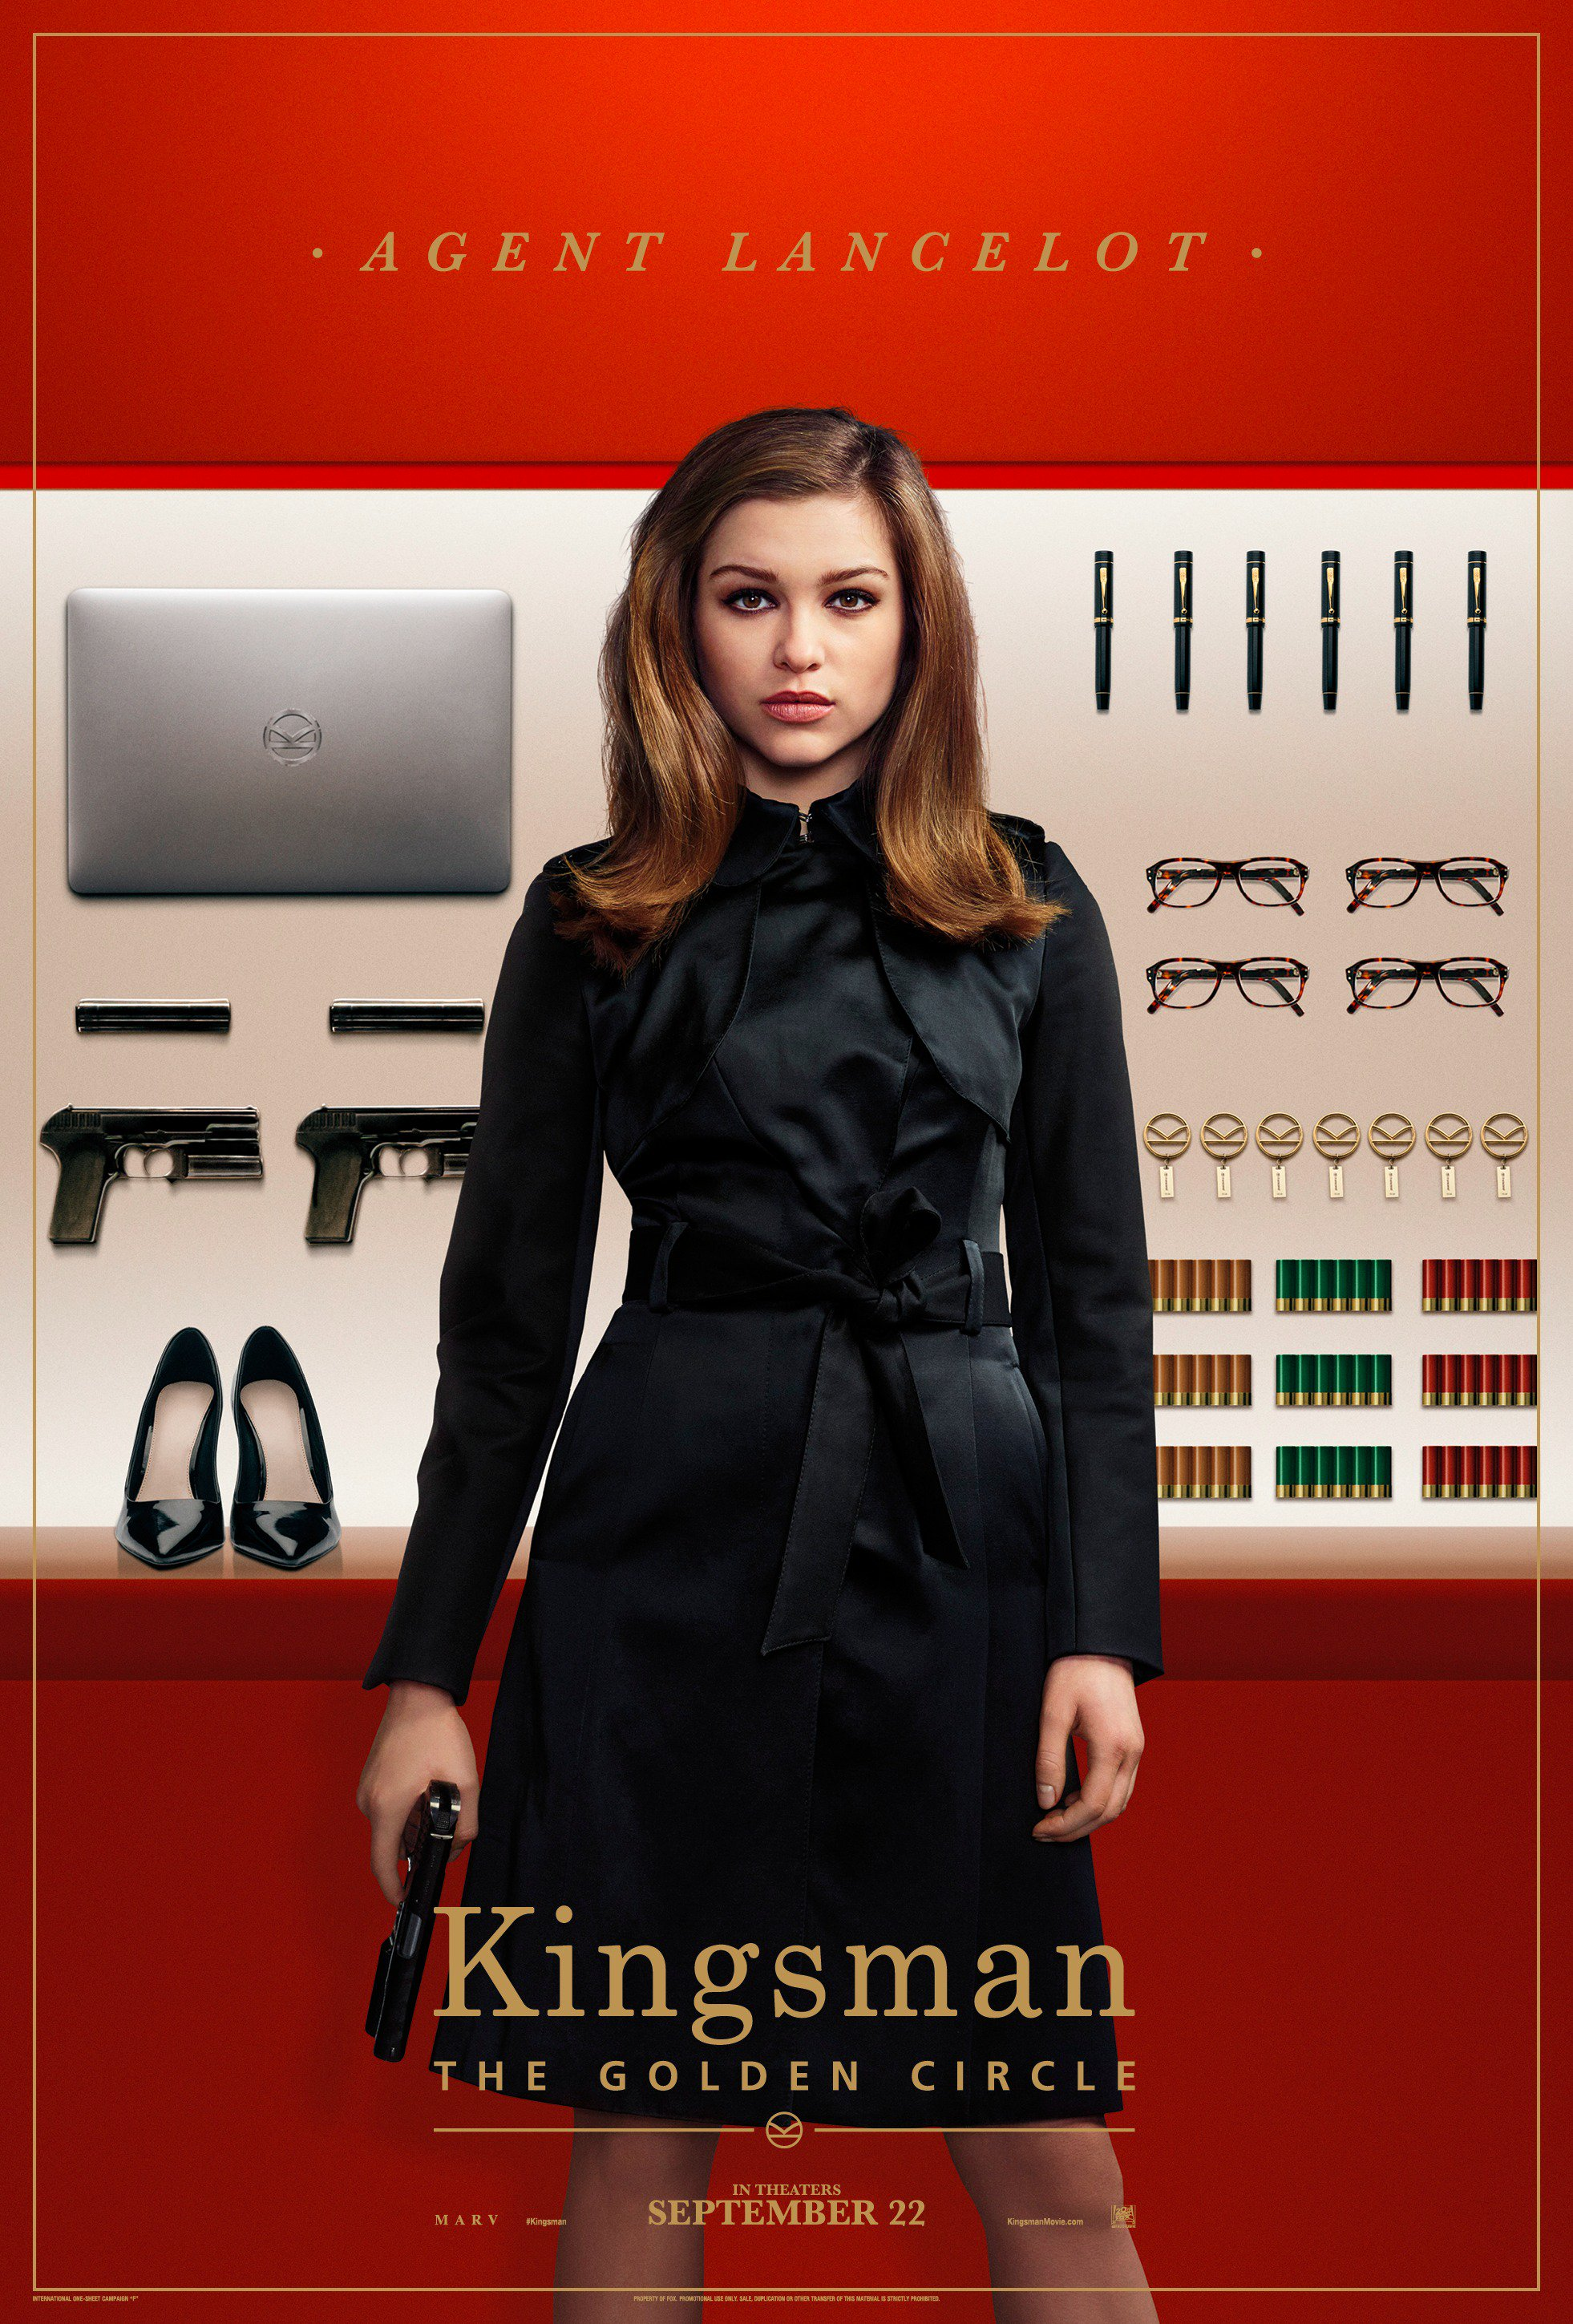 Kingsman Golden Circle karakterposters Agent Lancelot